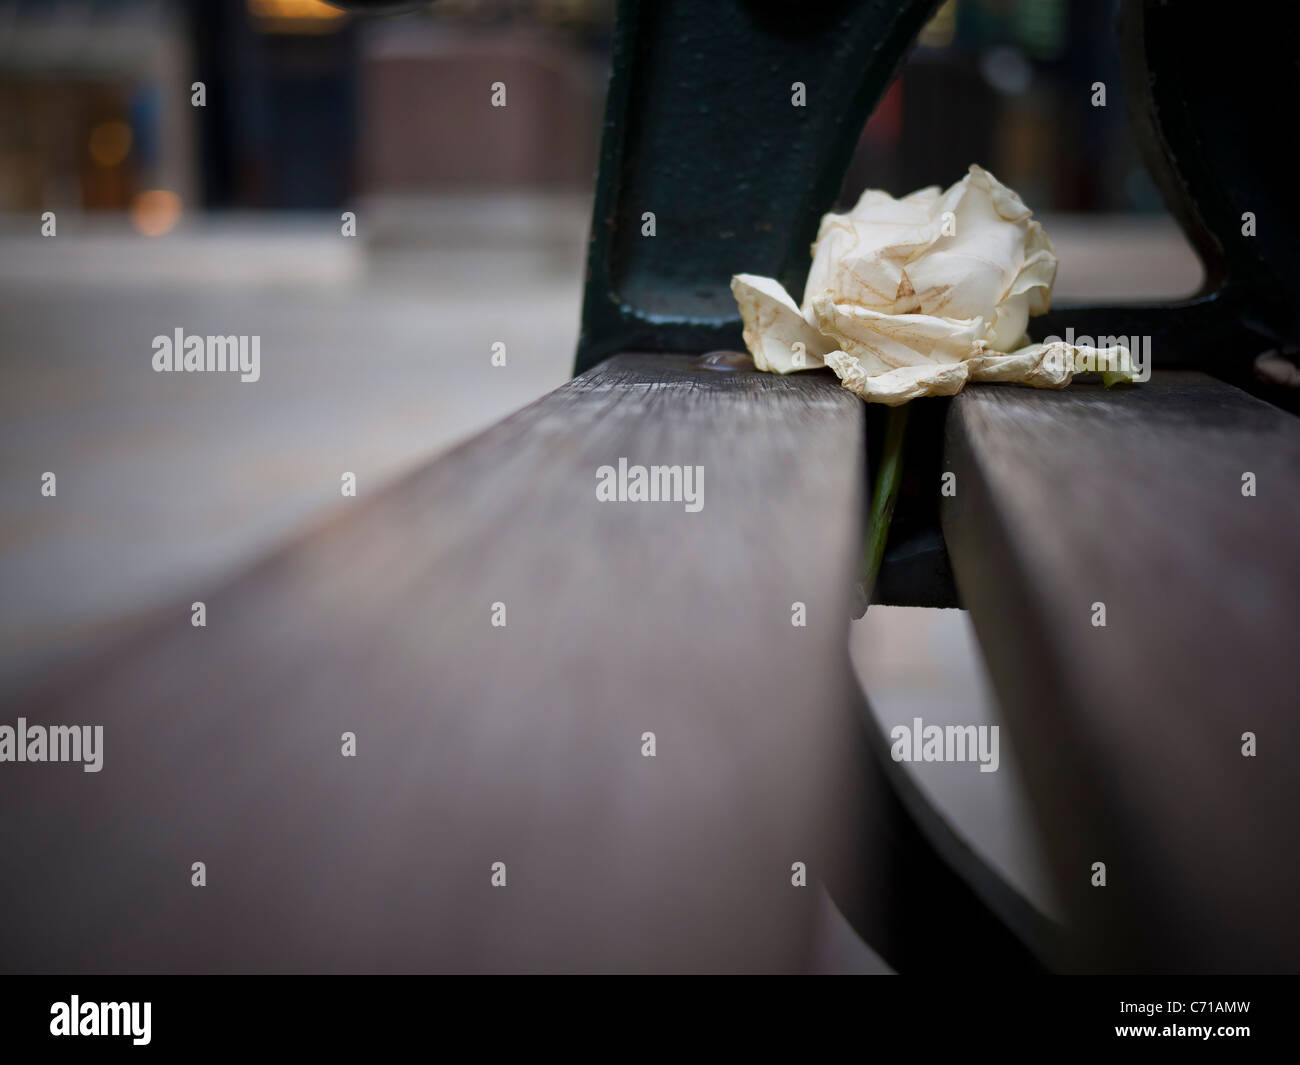 White rose discarded from night before on bench - Stock Image